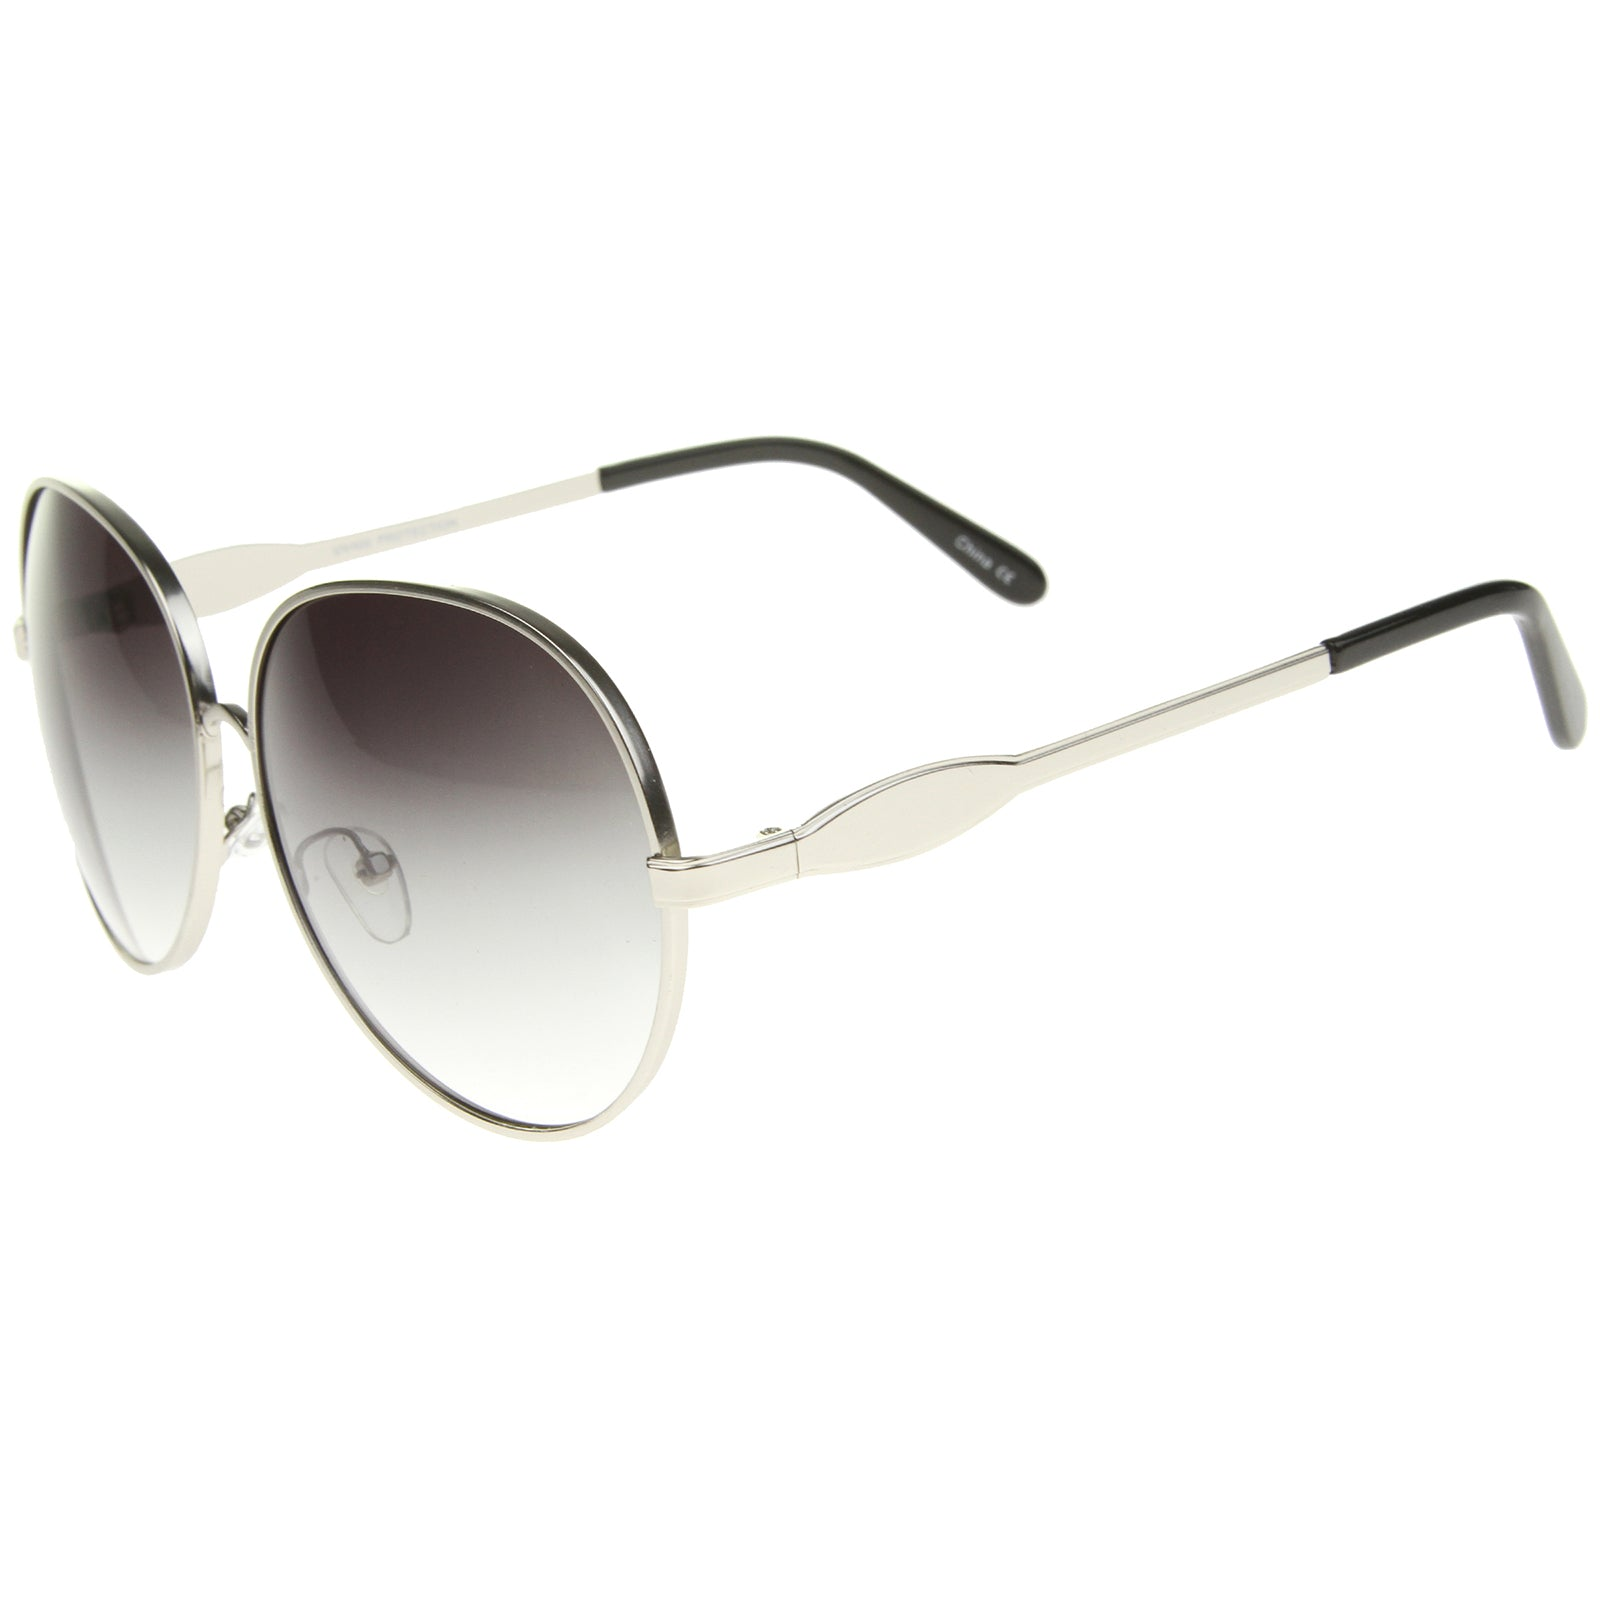 Womens Glam Full Metal Frame Oversized Round Sunglasses 63mm - sunglass.la - 7